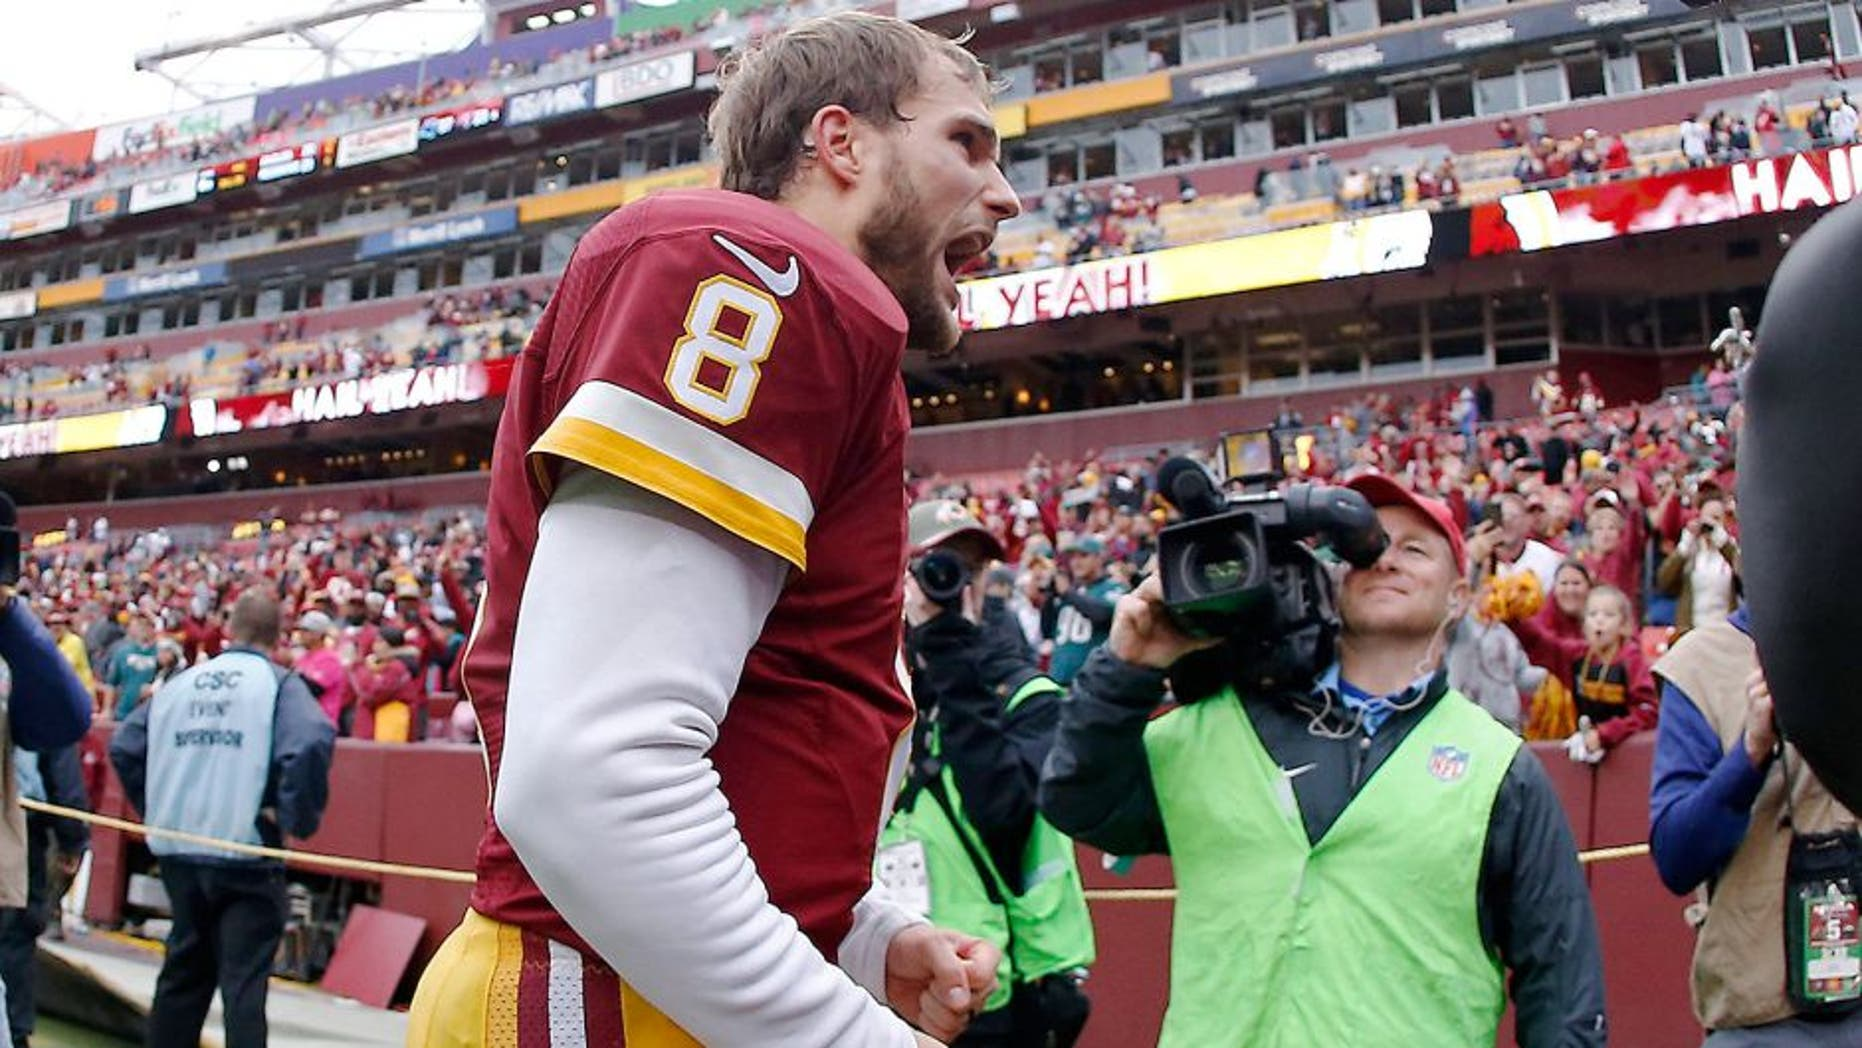 Oct 4, 2015; Landover, MD, USA; Washington Redskins quarterback Kirk Cousins (8) celebrates while leaving the field after the Reskins' game against the Philadelphia Eagles at FedEx Field. The Redskins won 23-20. Mandatory Credit: Geoff Burke-USA TODAY Sports